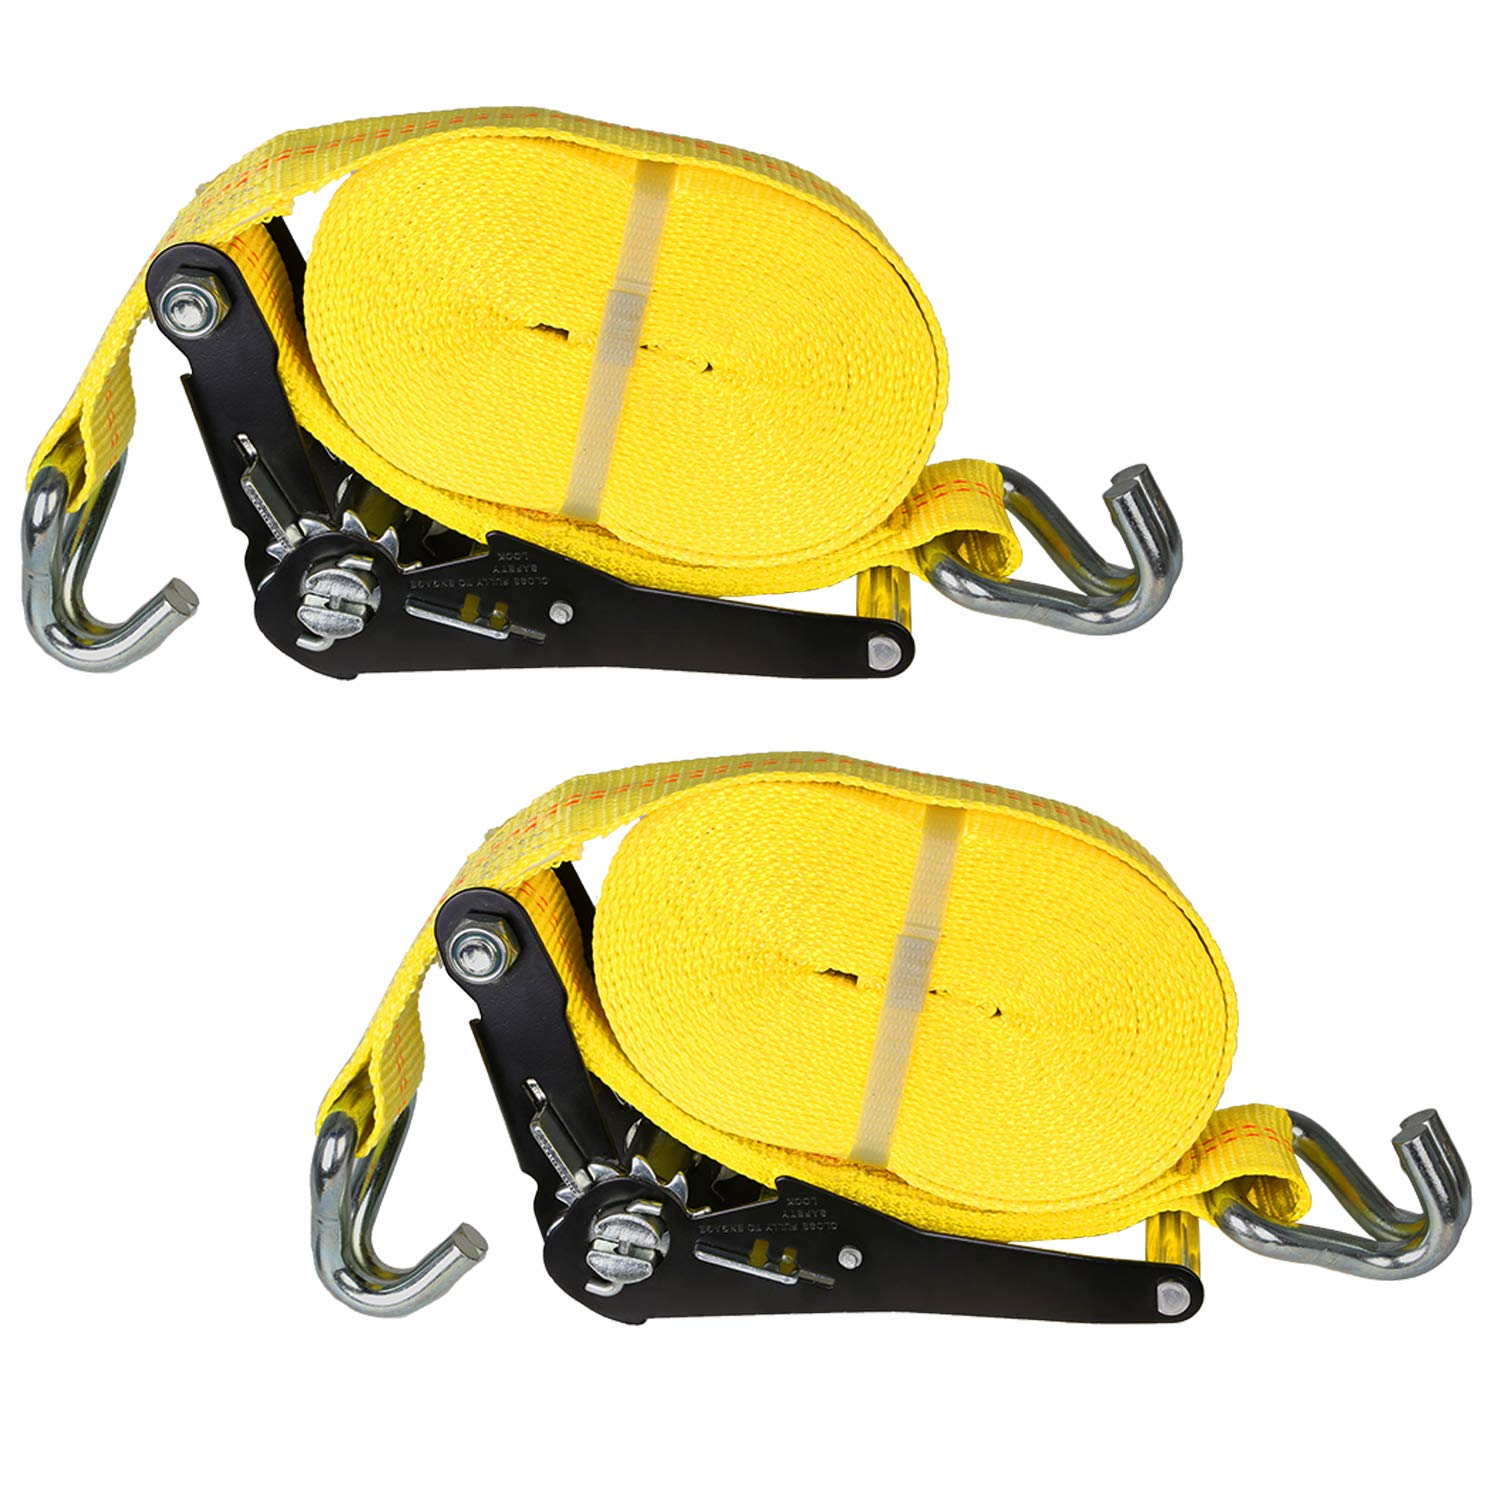 Lawn Equipment and Motorcycles Weize 2-Pack 27 x 2 Anti-Shock 10000Lbs Break Strength Cargo Strap Heavy Duty Ratchet Tie-Down System for Trailers Moving Appliances